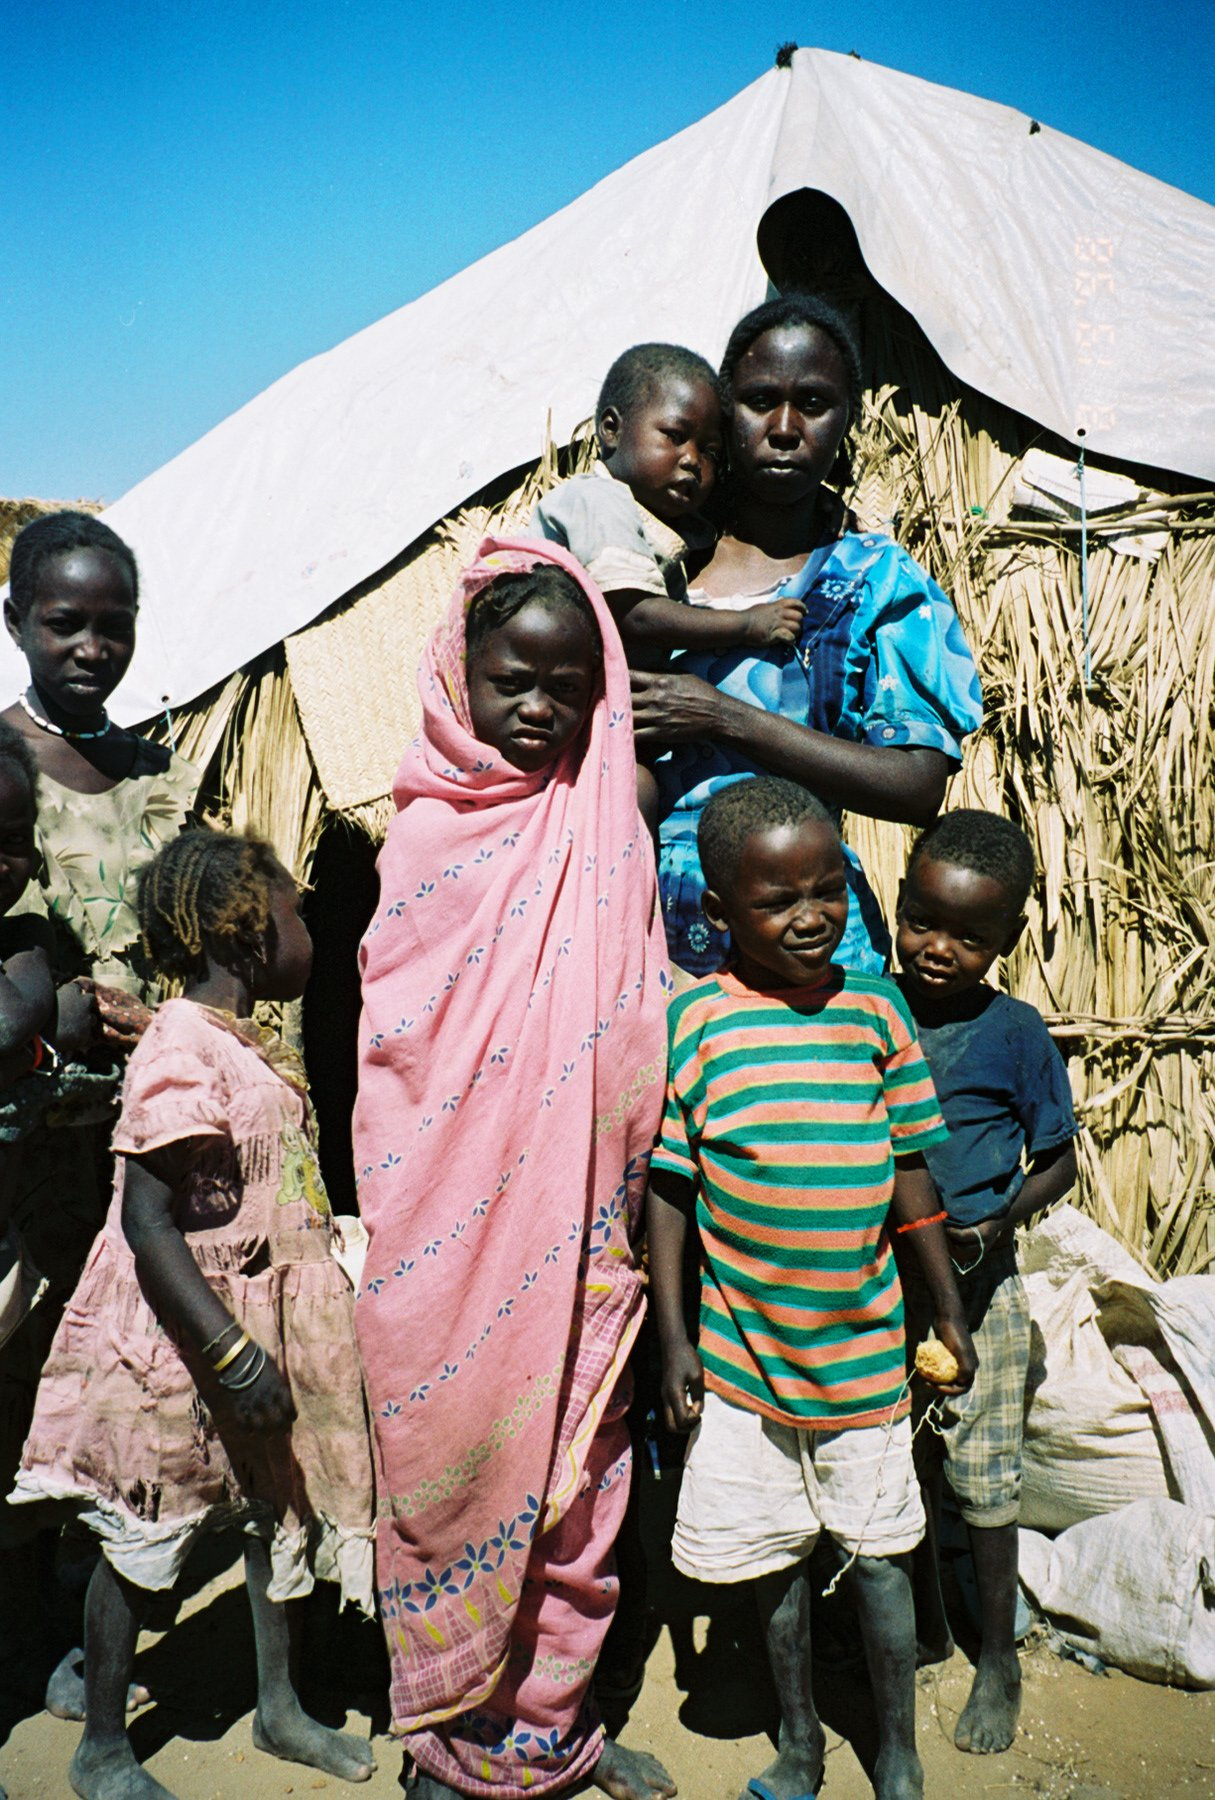 genocide in darfur Darfur - find news stories, facts, pictures and video about darfur - page 1 | newser.